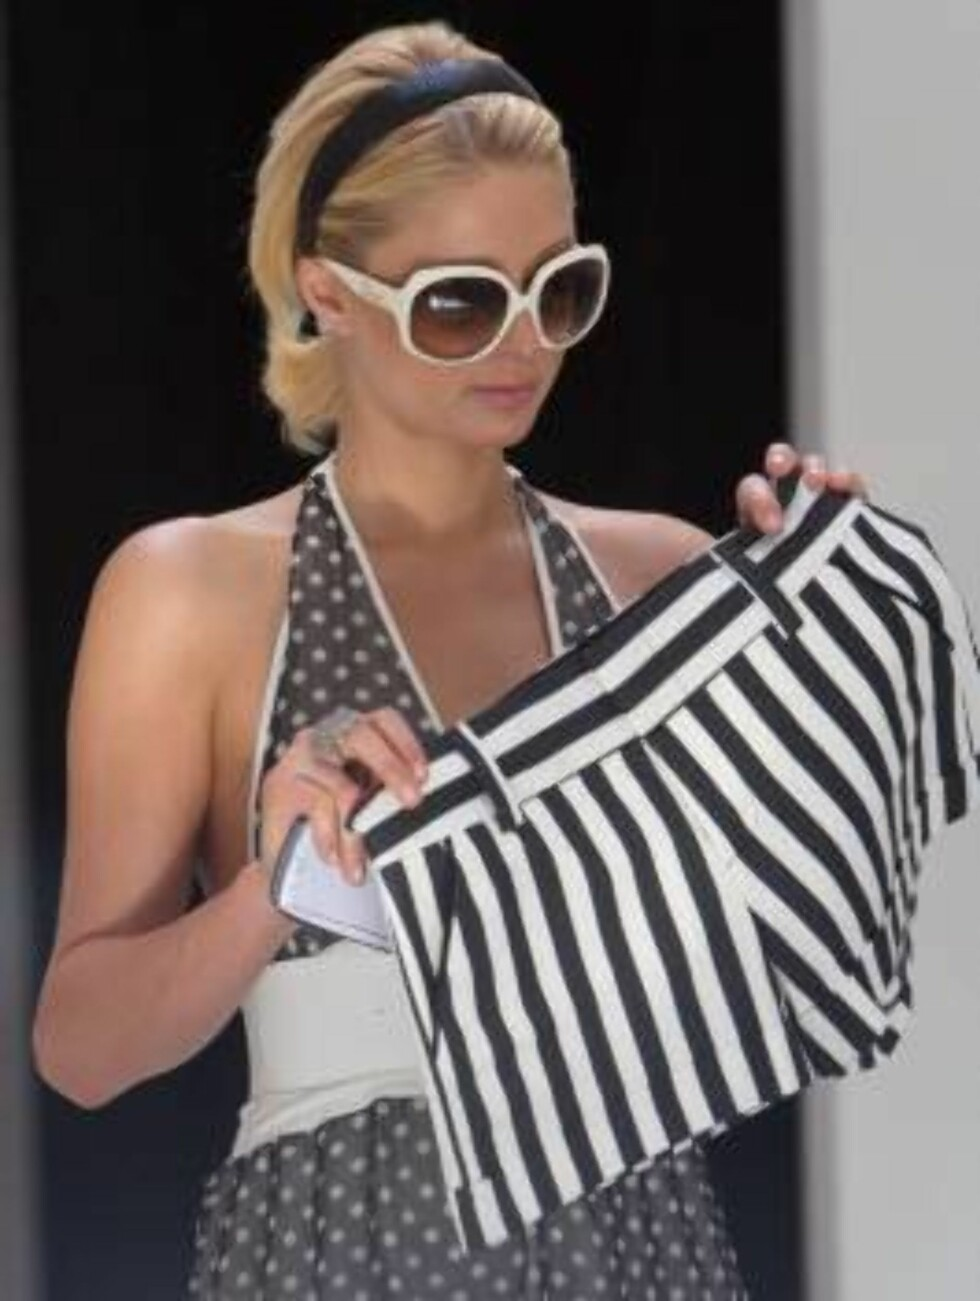 Paris Hilton stopa at Taco Bell before going shopping for stripes shorts in Hollywood July 7, 2006 X17agency exclusive Foto: All Over Press